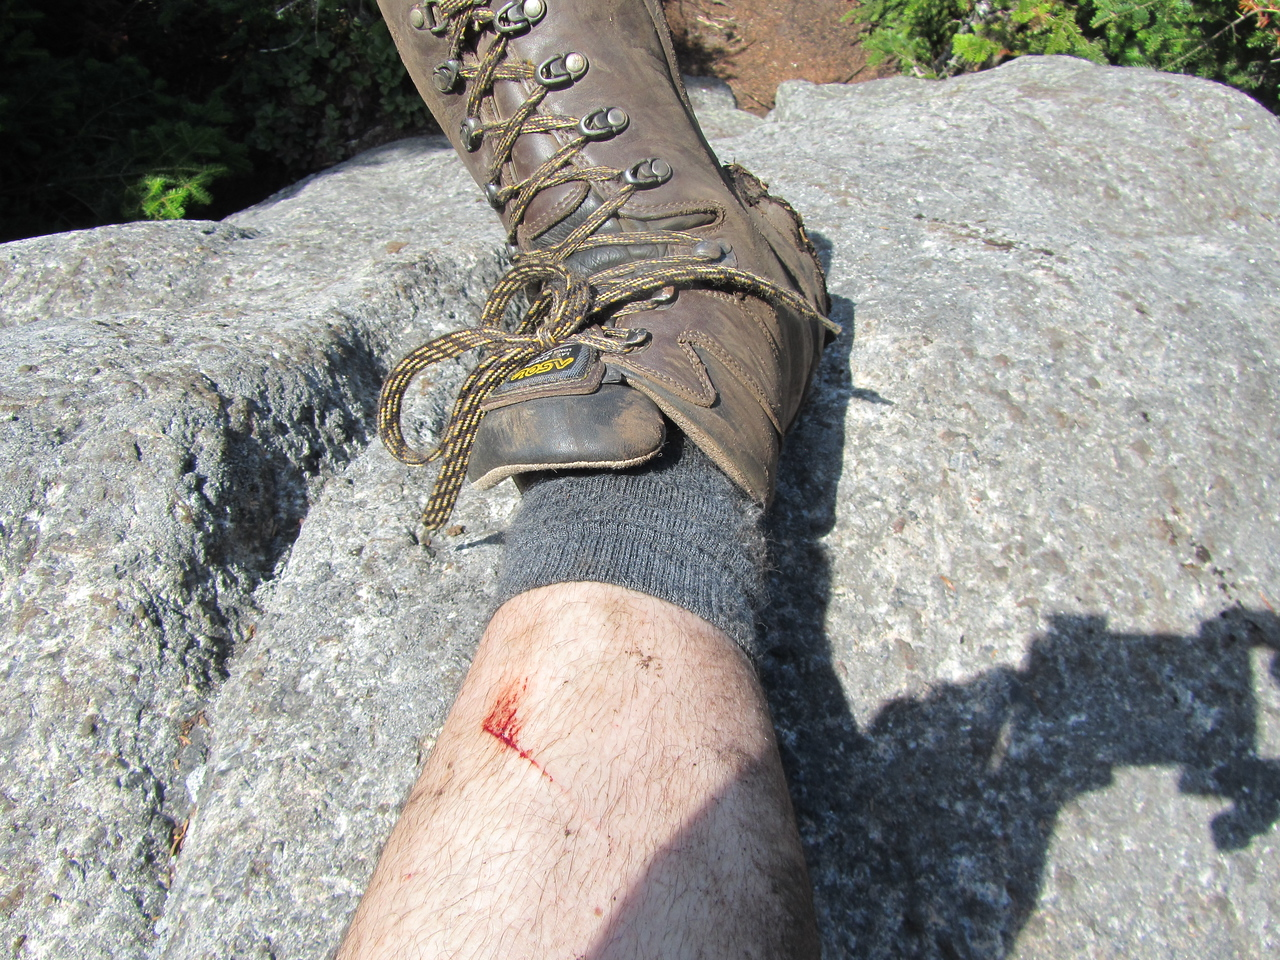 On the summit of Macomb. Bloodied and beaten down like a married man.